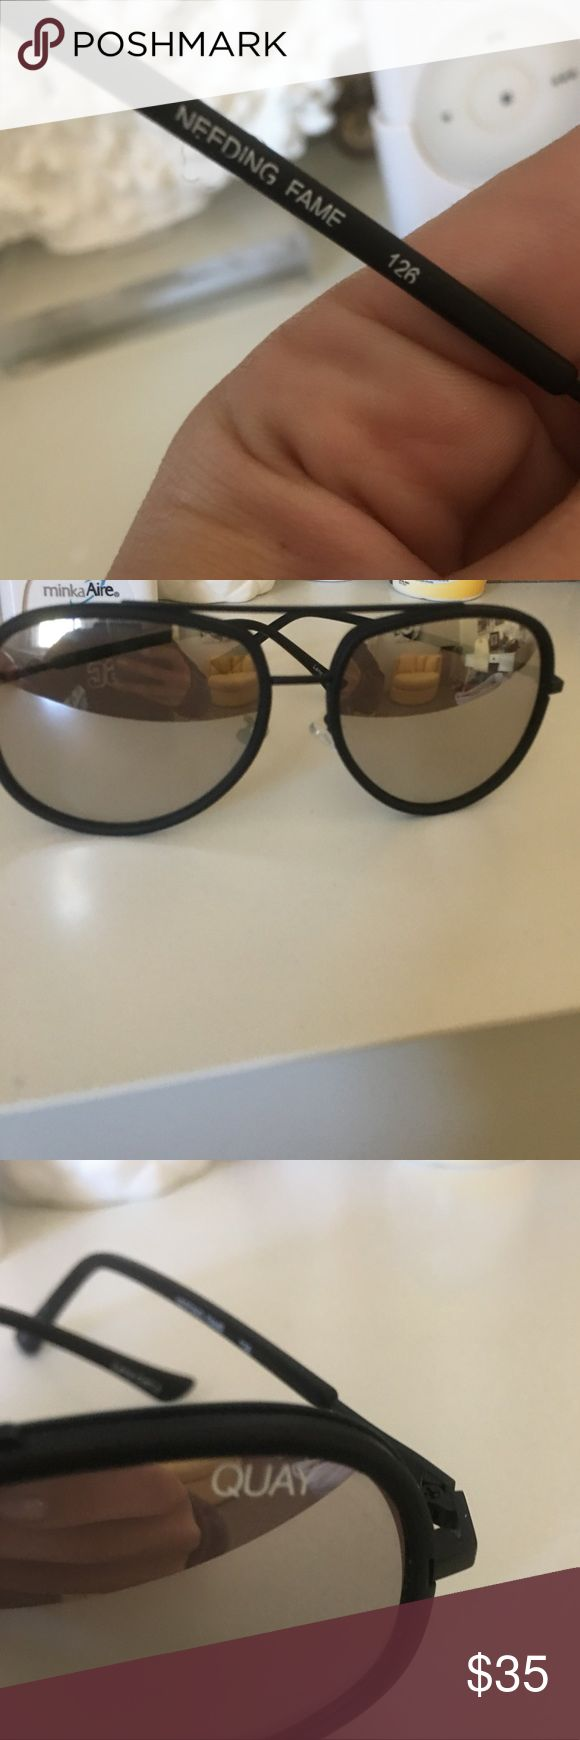 Quay glasses Barely used Quay sunglasses tinted and great to wear in the sun. Reflective lenses and matte black frames Quay Australia Accessories Sunglasses